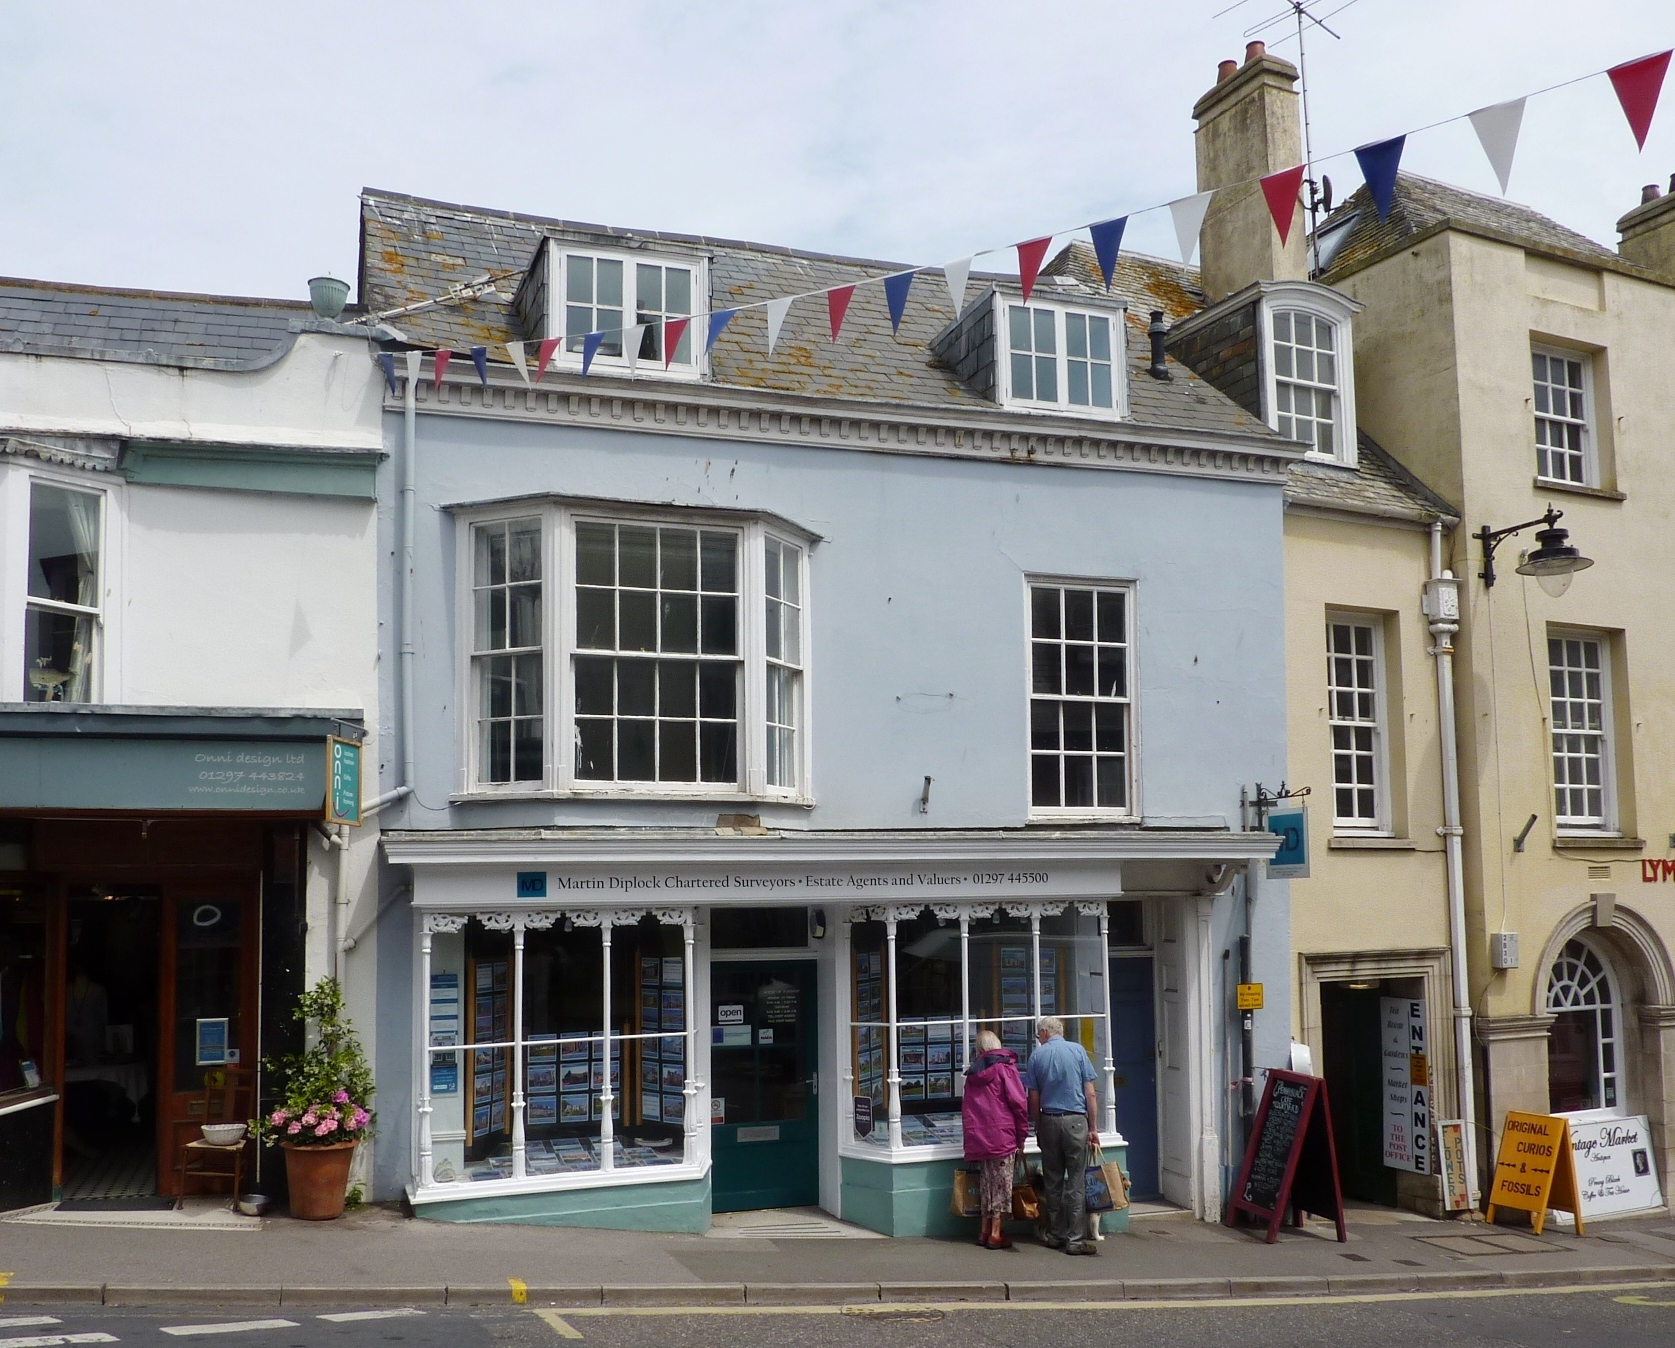 2 Bedrooms Maisonette Flat for sale in Lyme Regis